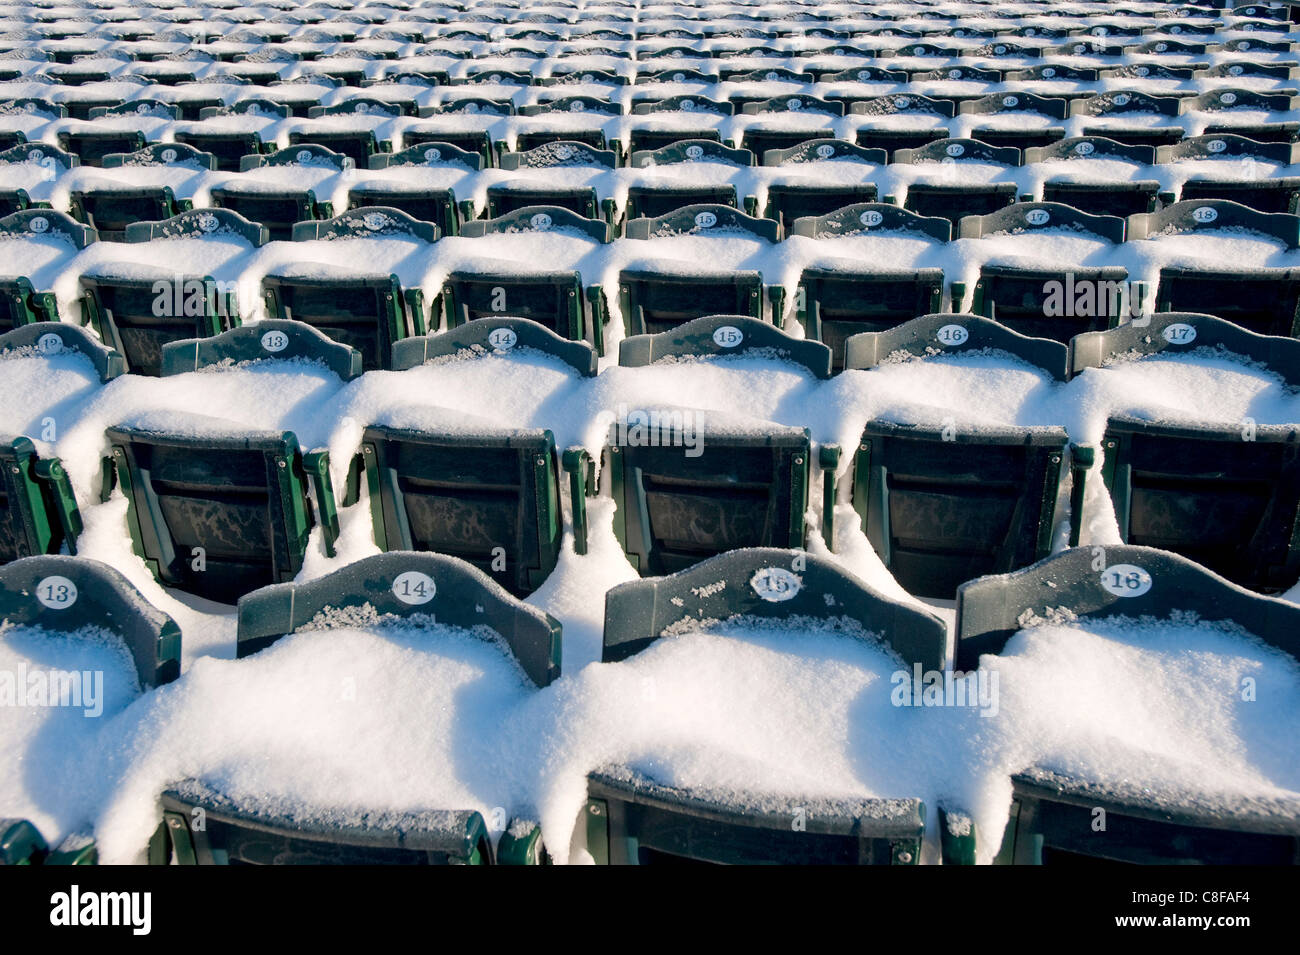 Snow covered seats in a baseball stadium. - Stock Image